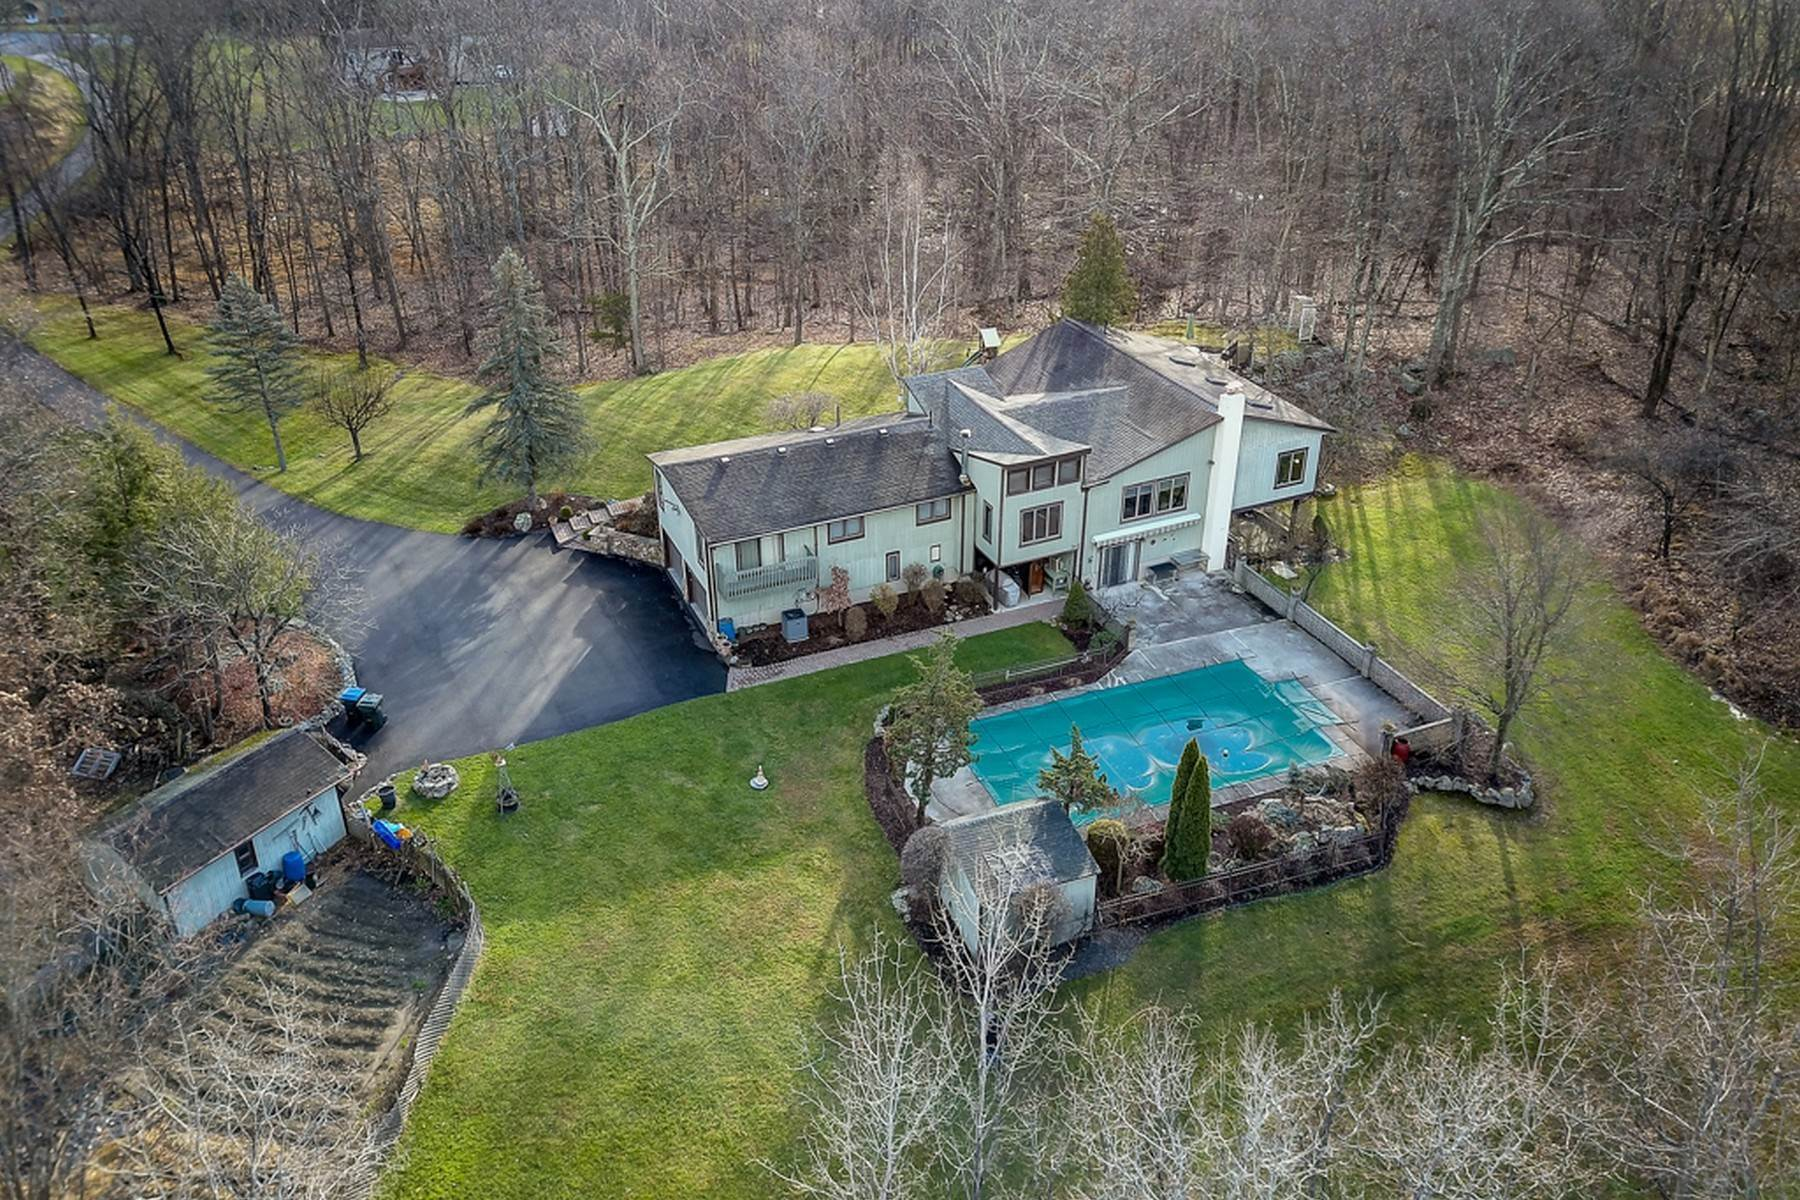 Single Family Homes for Sale at Exquisite Contemporary in Private 3.8 Acre Setting 117 Murray Drive Chester, New York 10918 United States